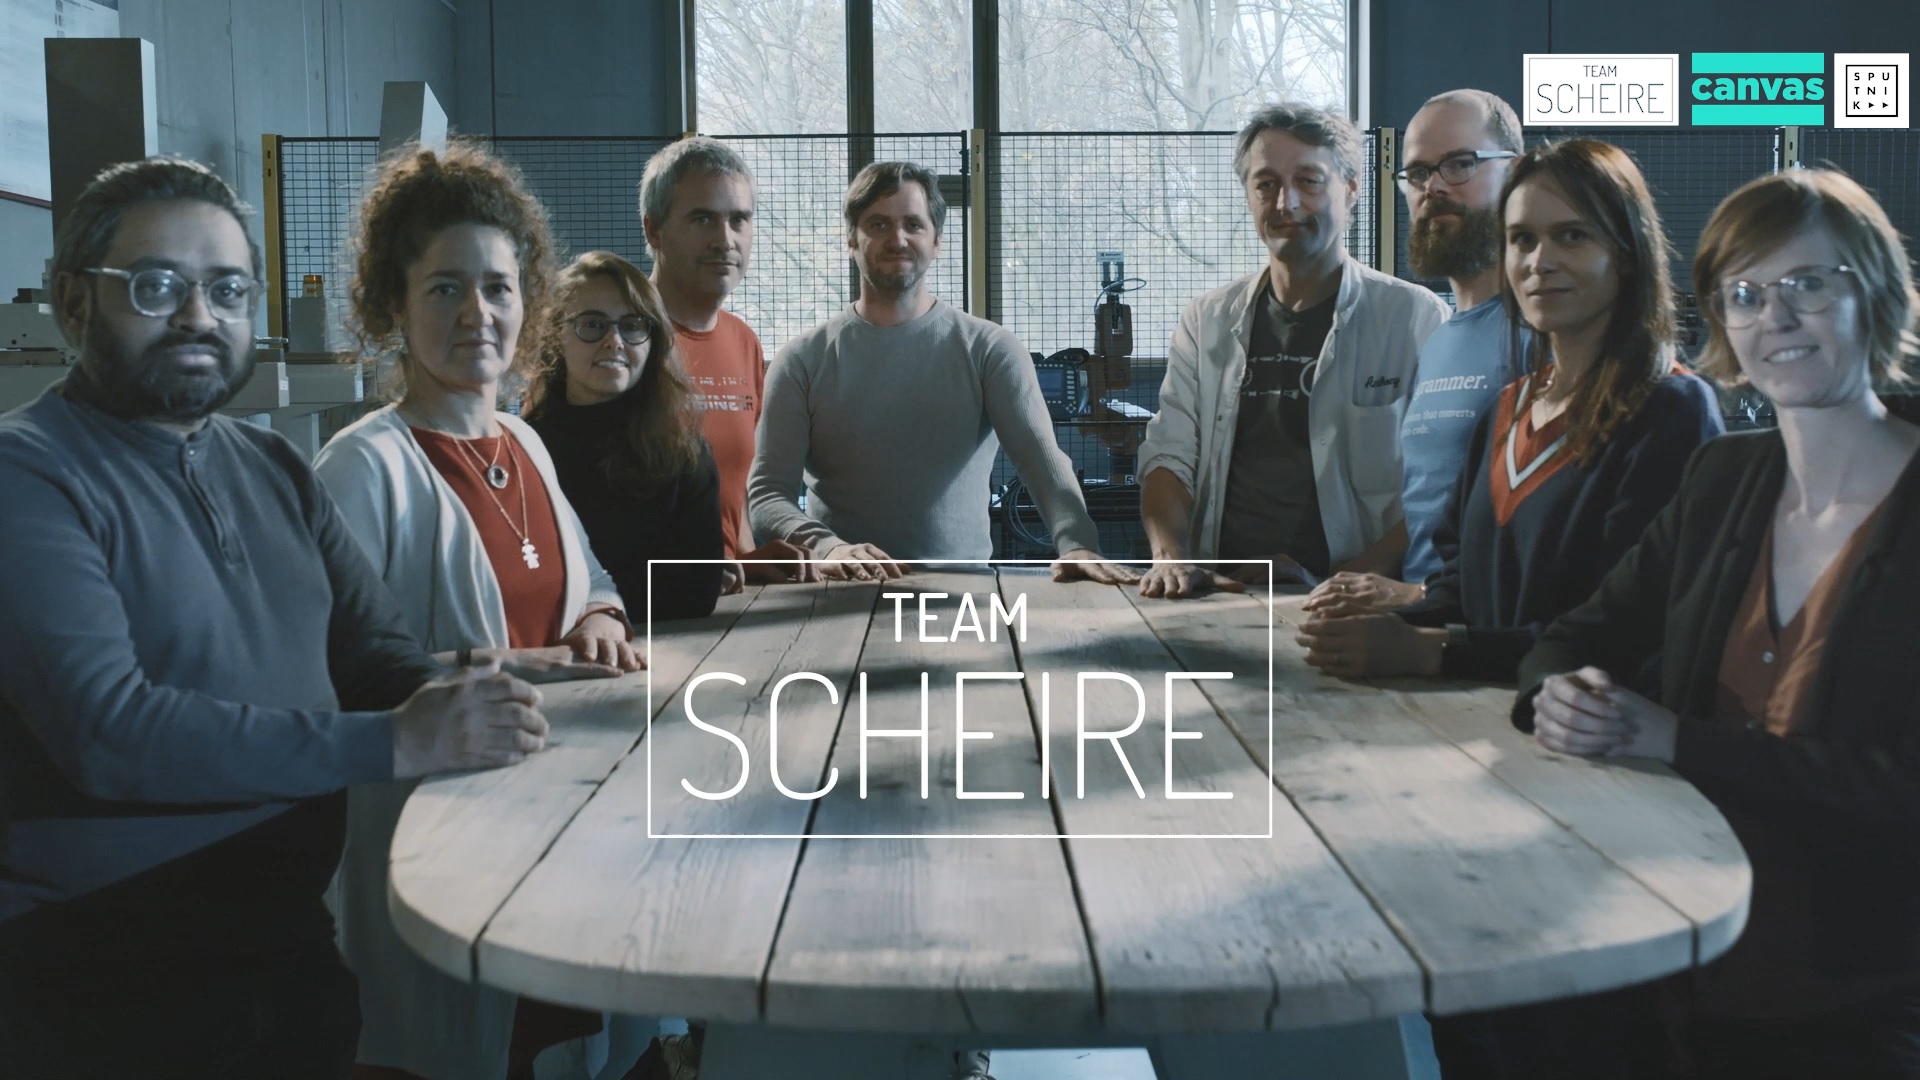 Materialise team on the Team Scheire TV show